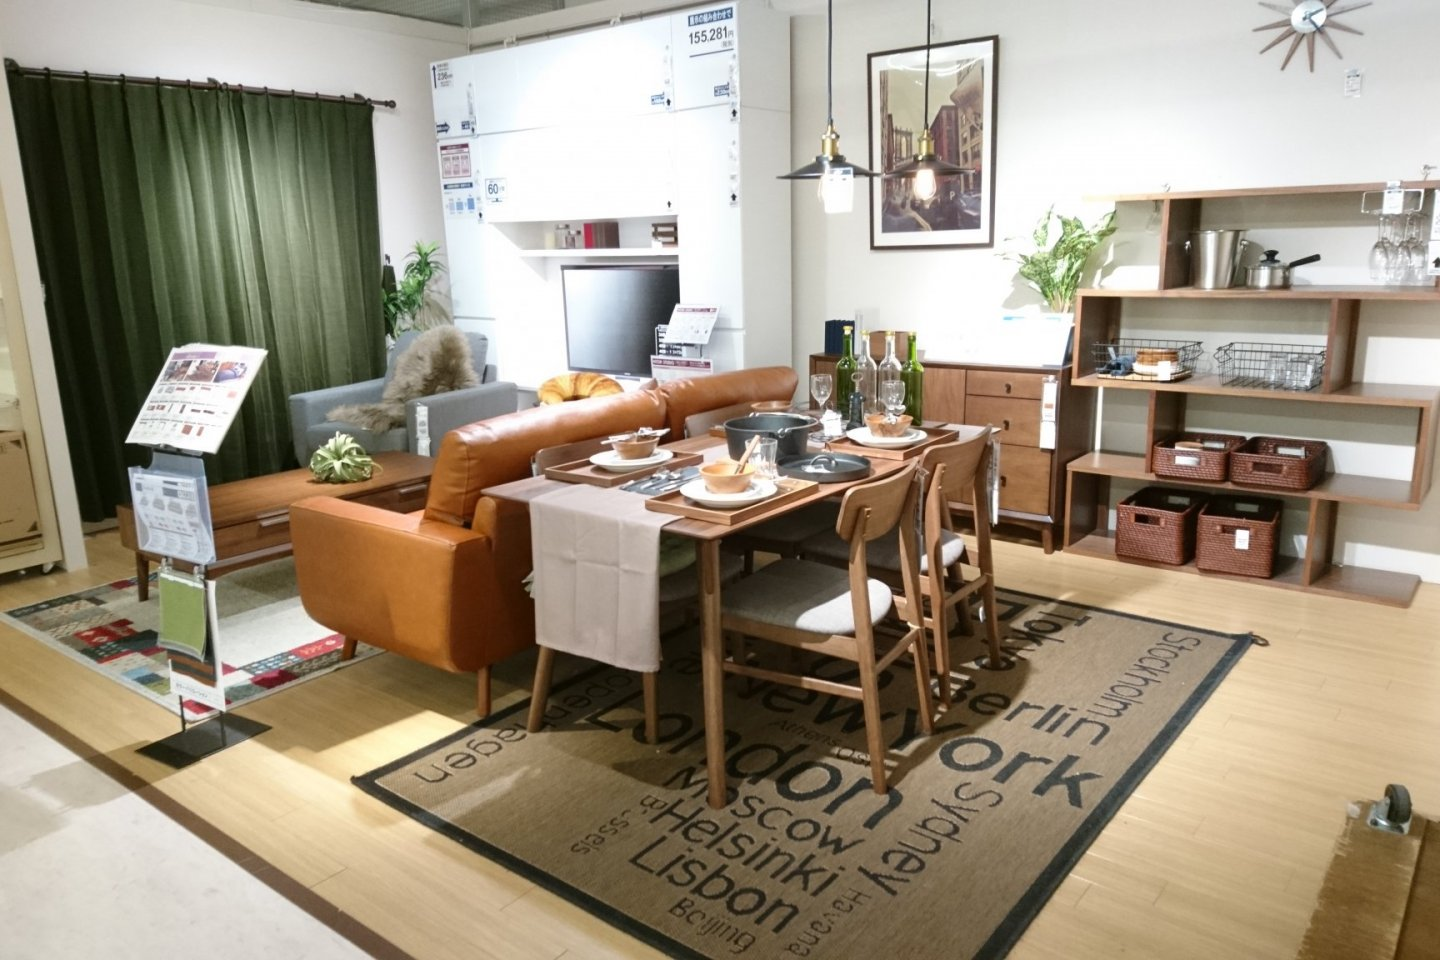 A mock-up living room and dining table